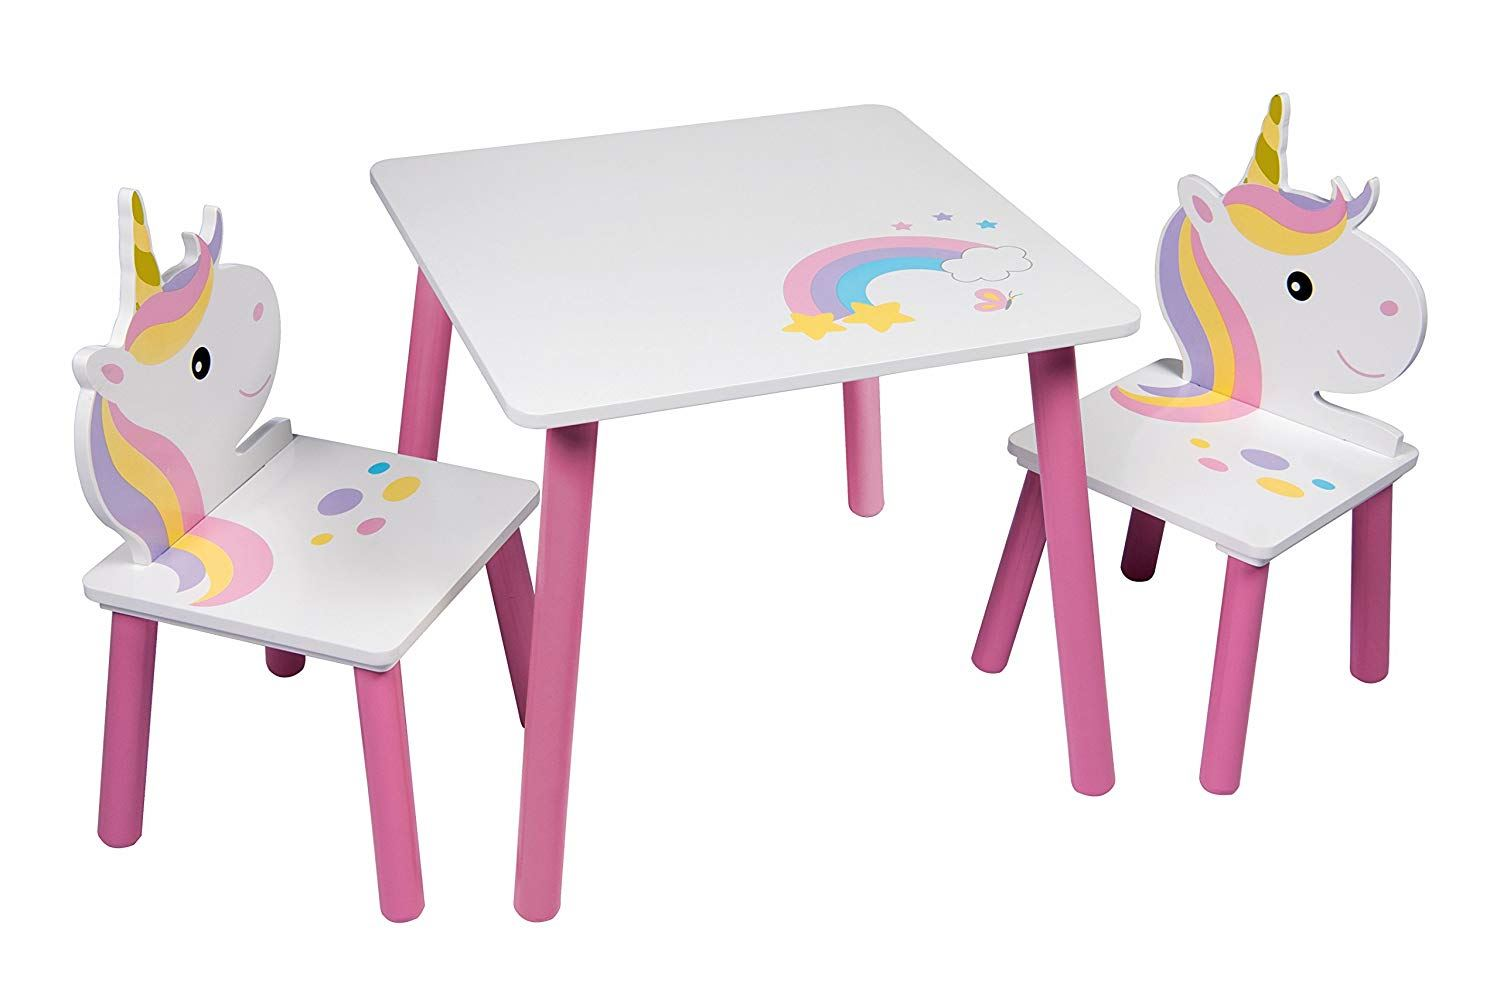 Details about unicorn table chairs set pink wooden kids toddlers nursery playroom furniture